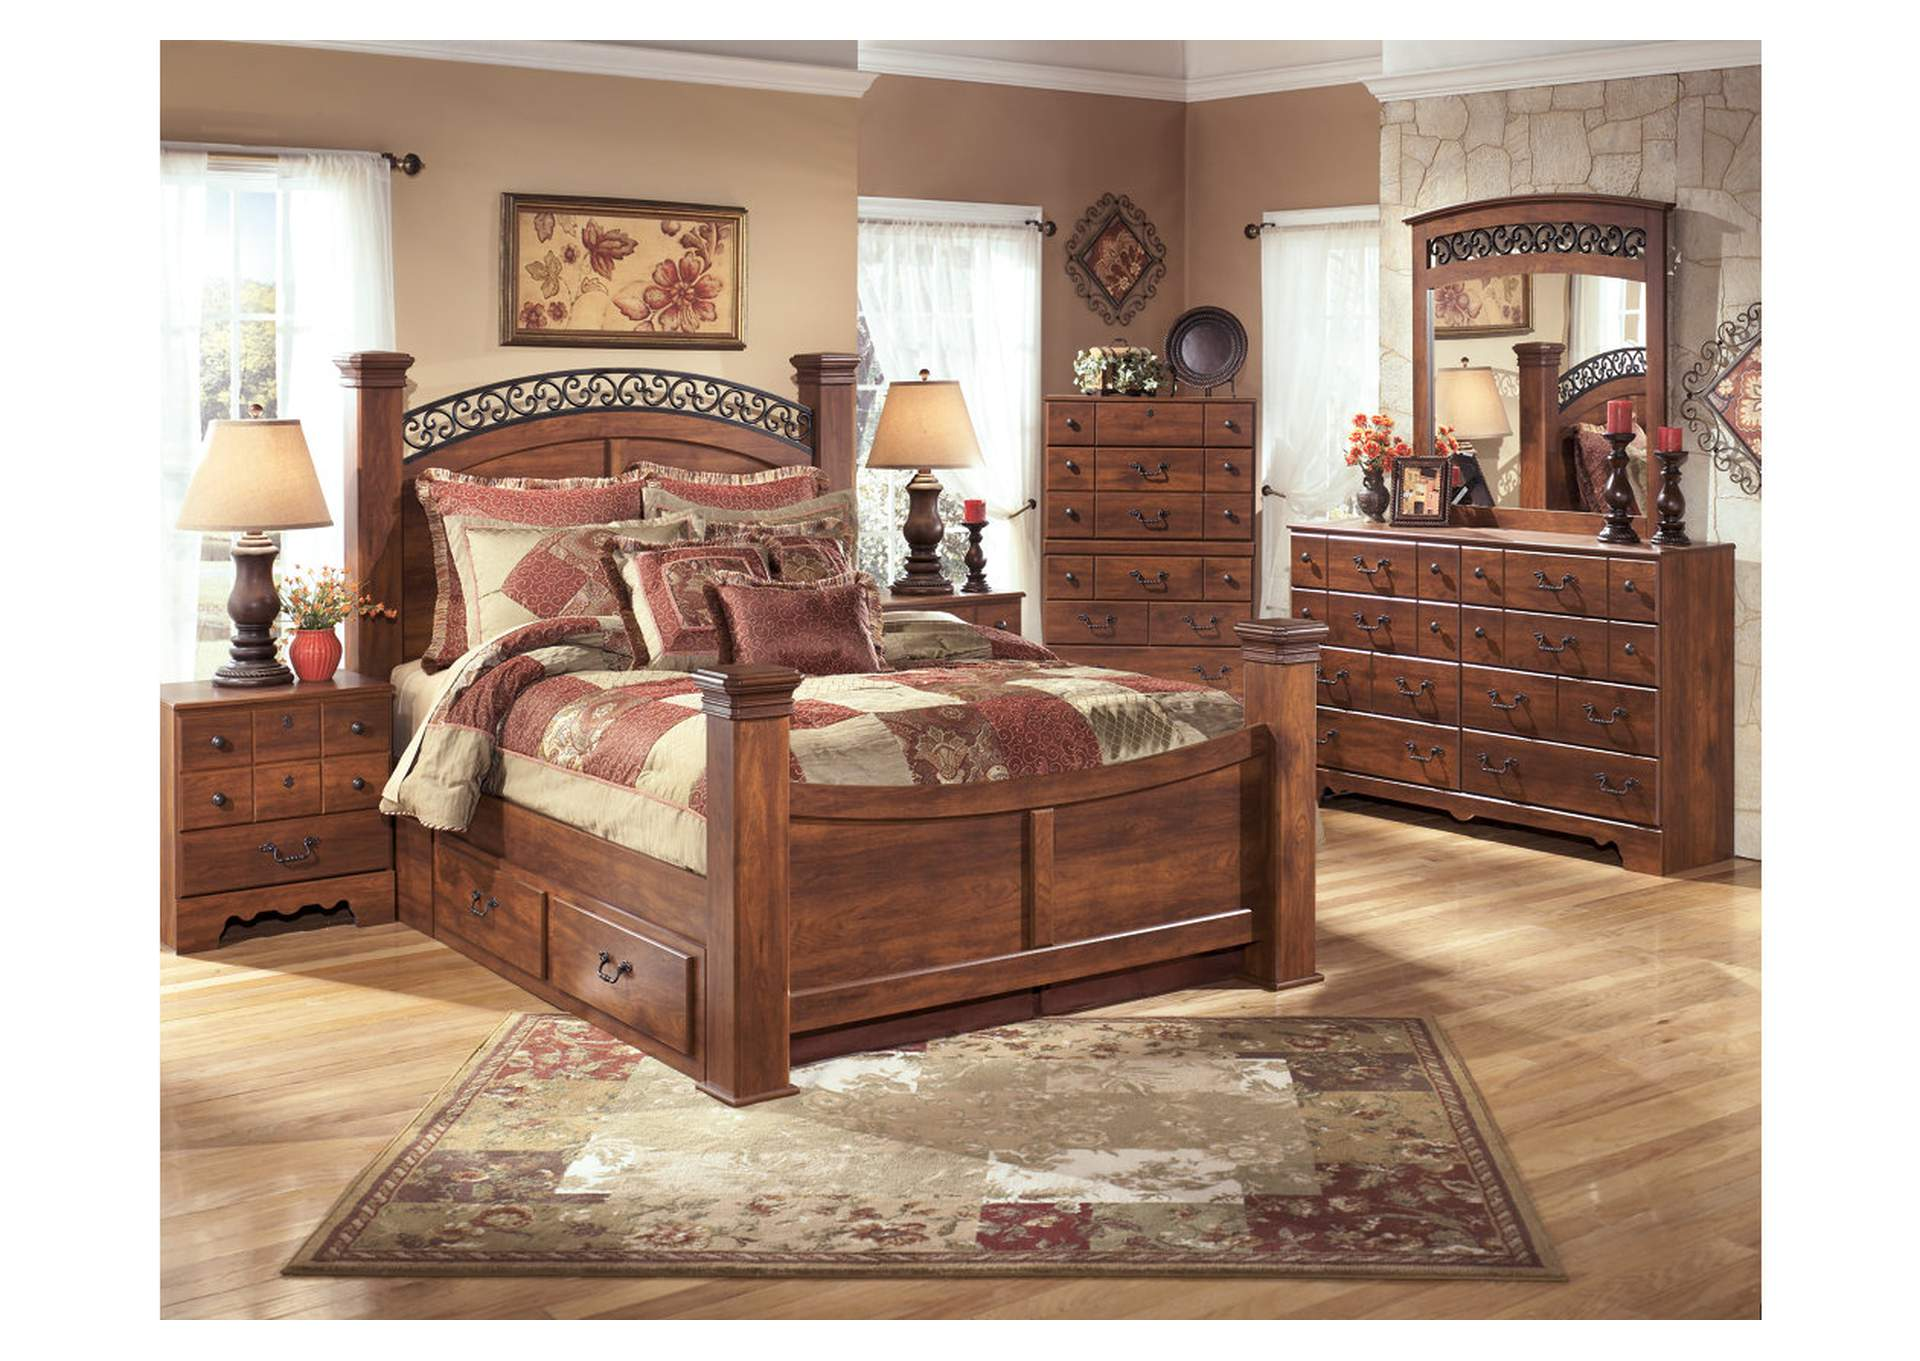 Timberline Queen Poster Storage Bed,Signature Design By Ashley